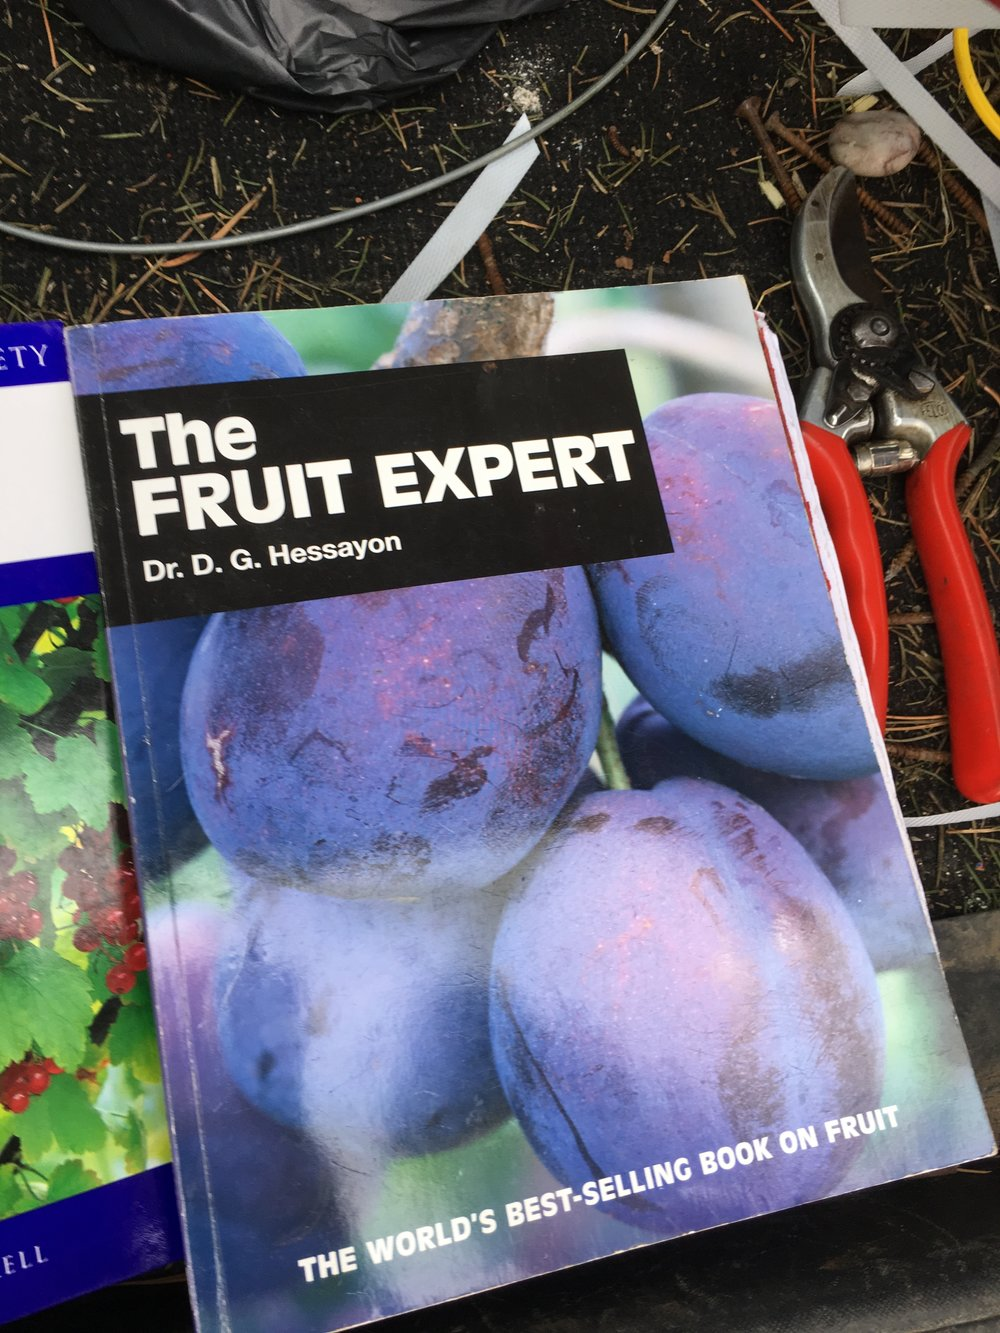 The fruit expert- a book with great pruning advice